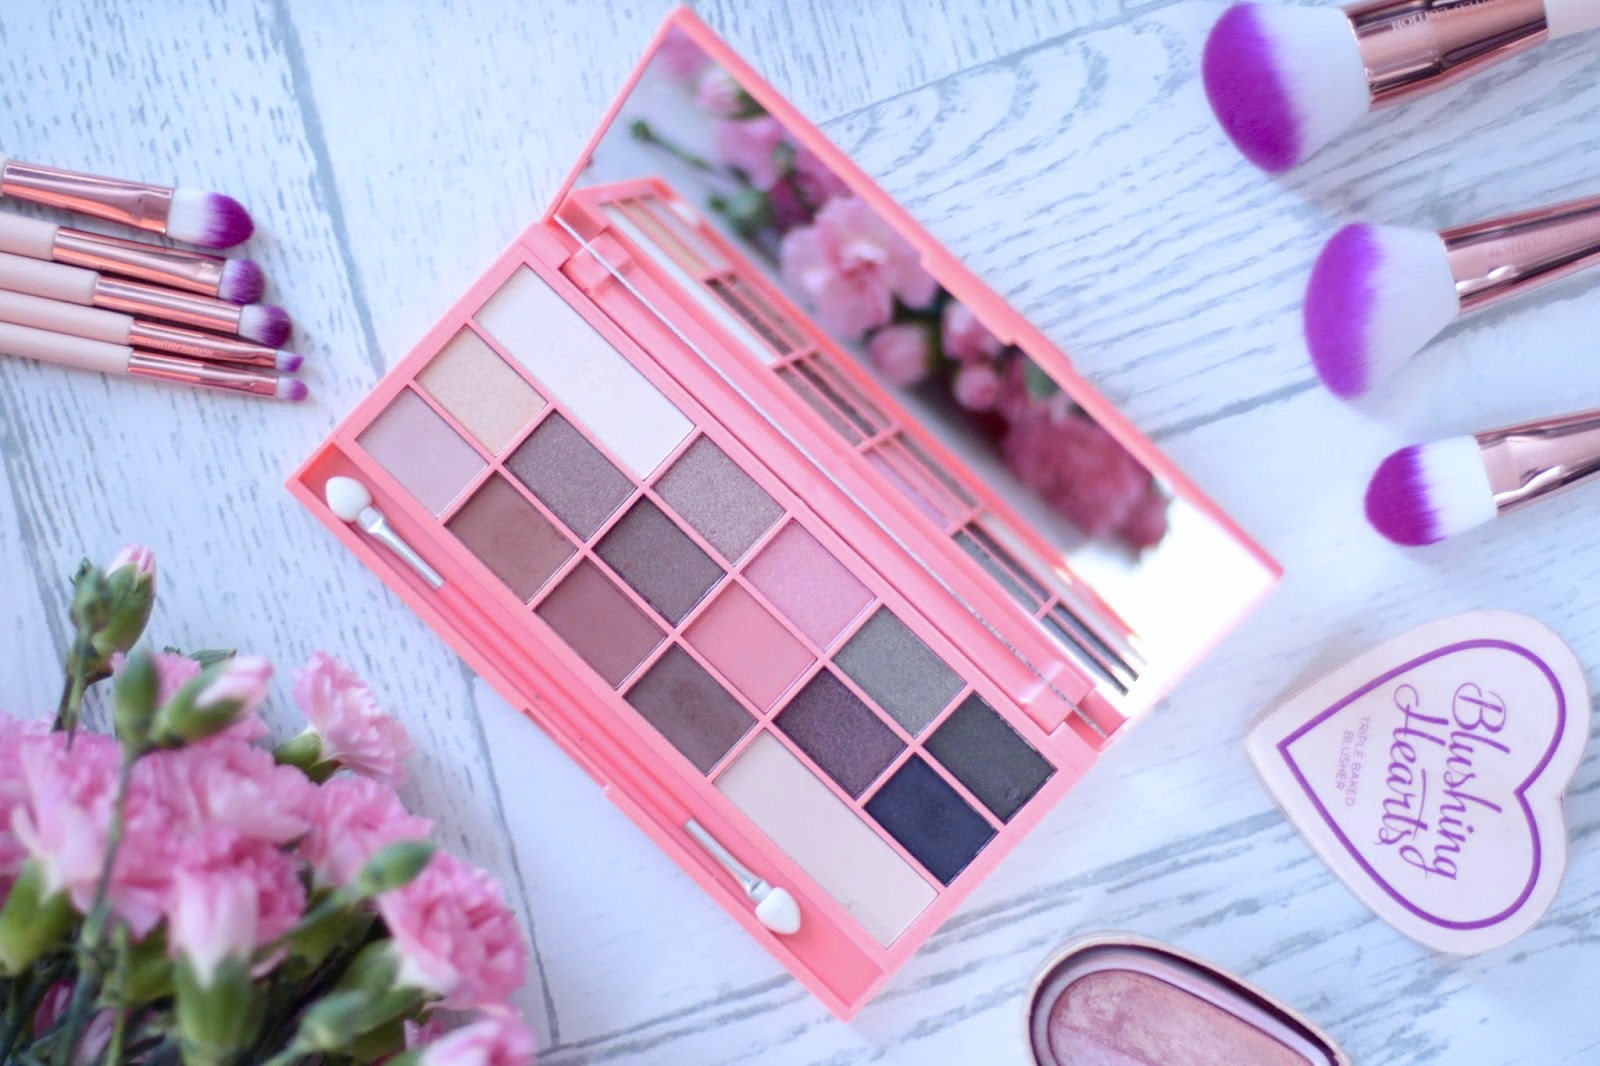 I Heart Makeup Chocolate & Peaches - Review & Swatches